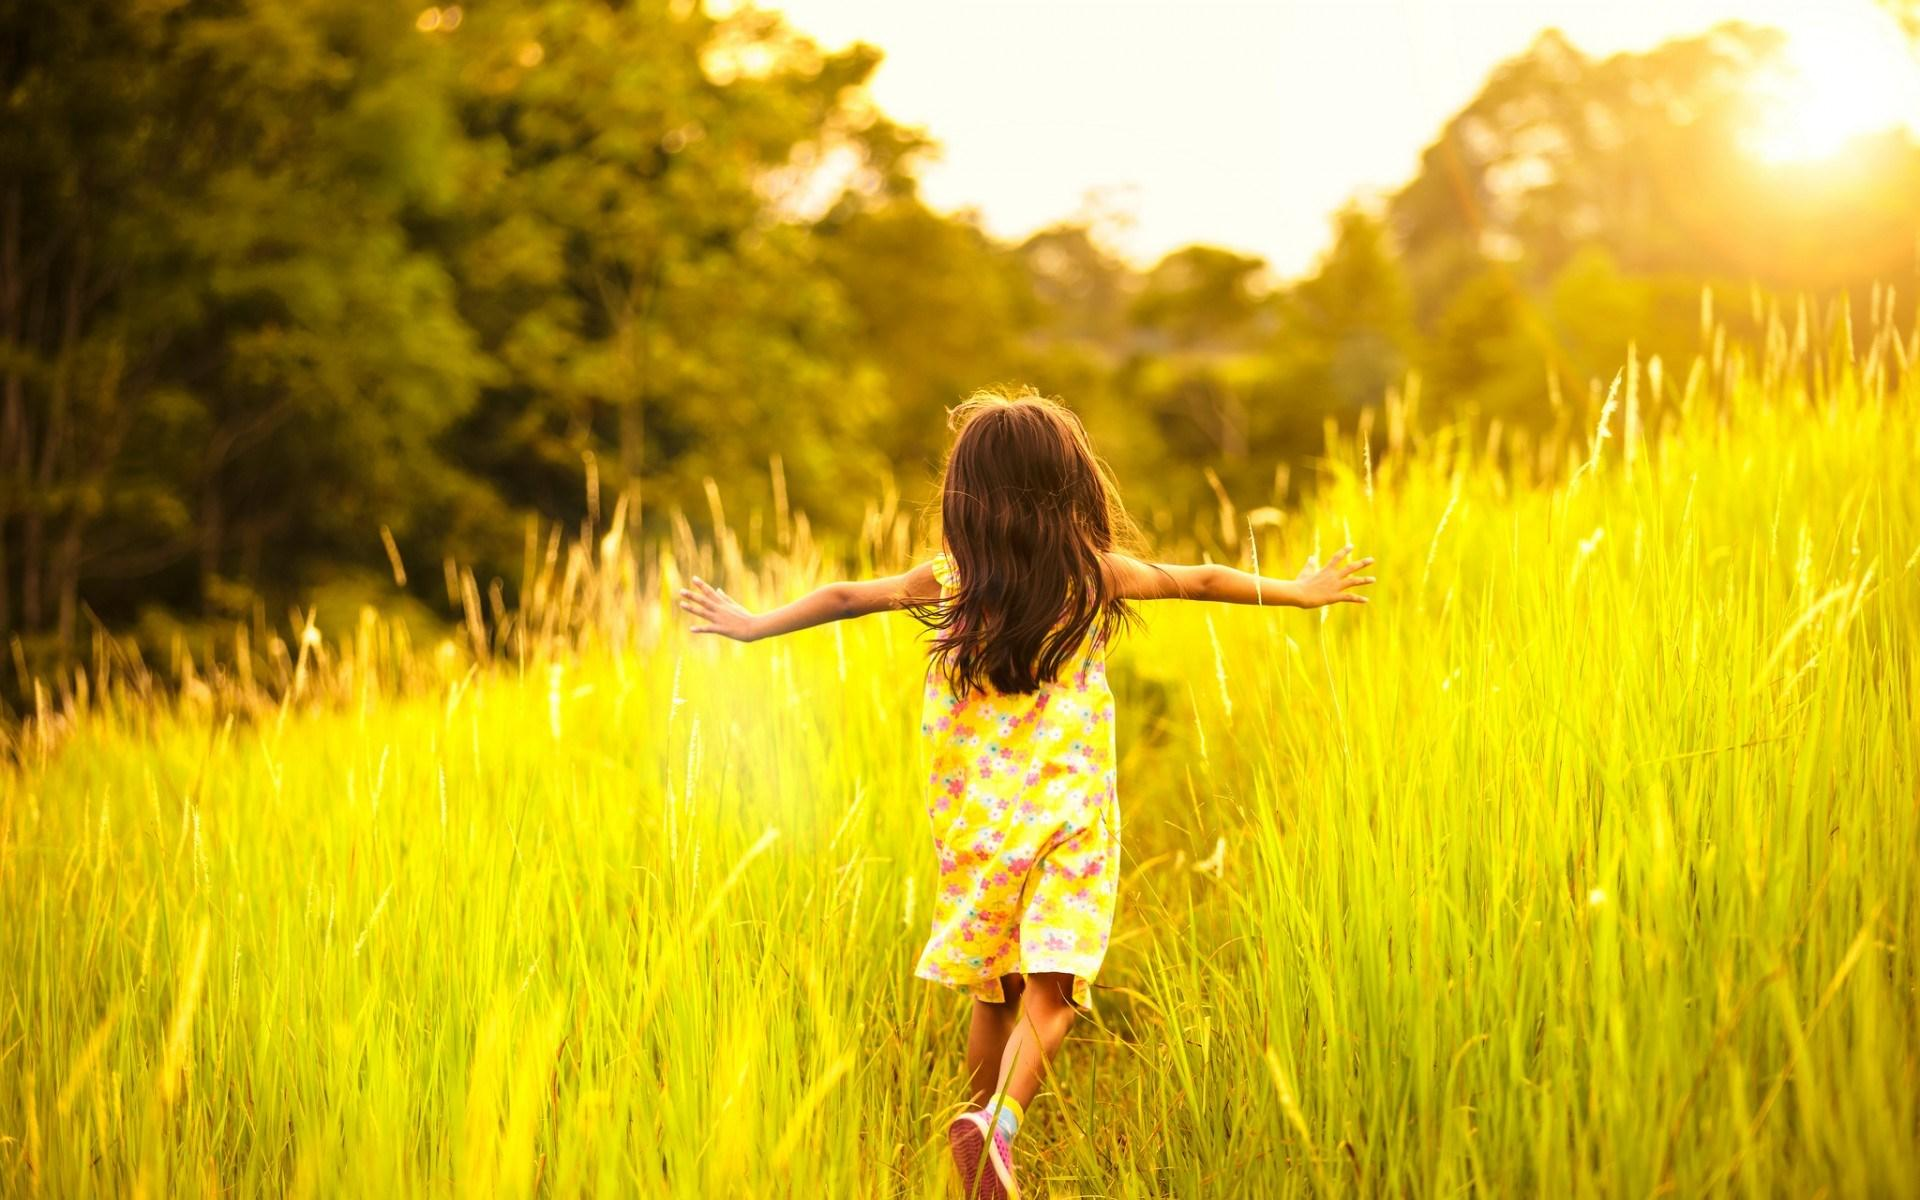 girl-kid-summer-field-mood-1080p-wallpaper